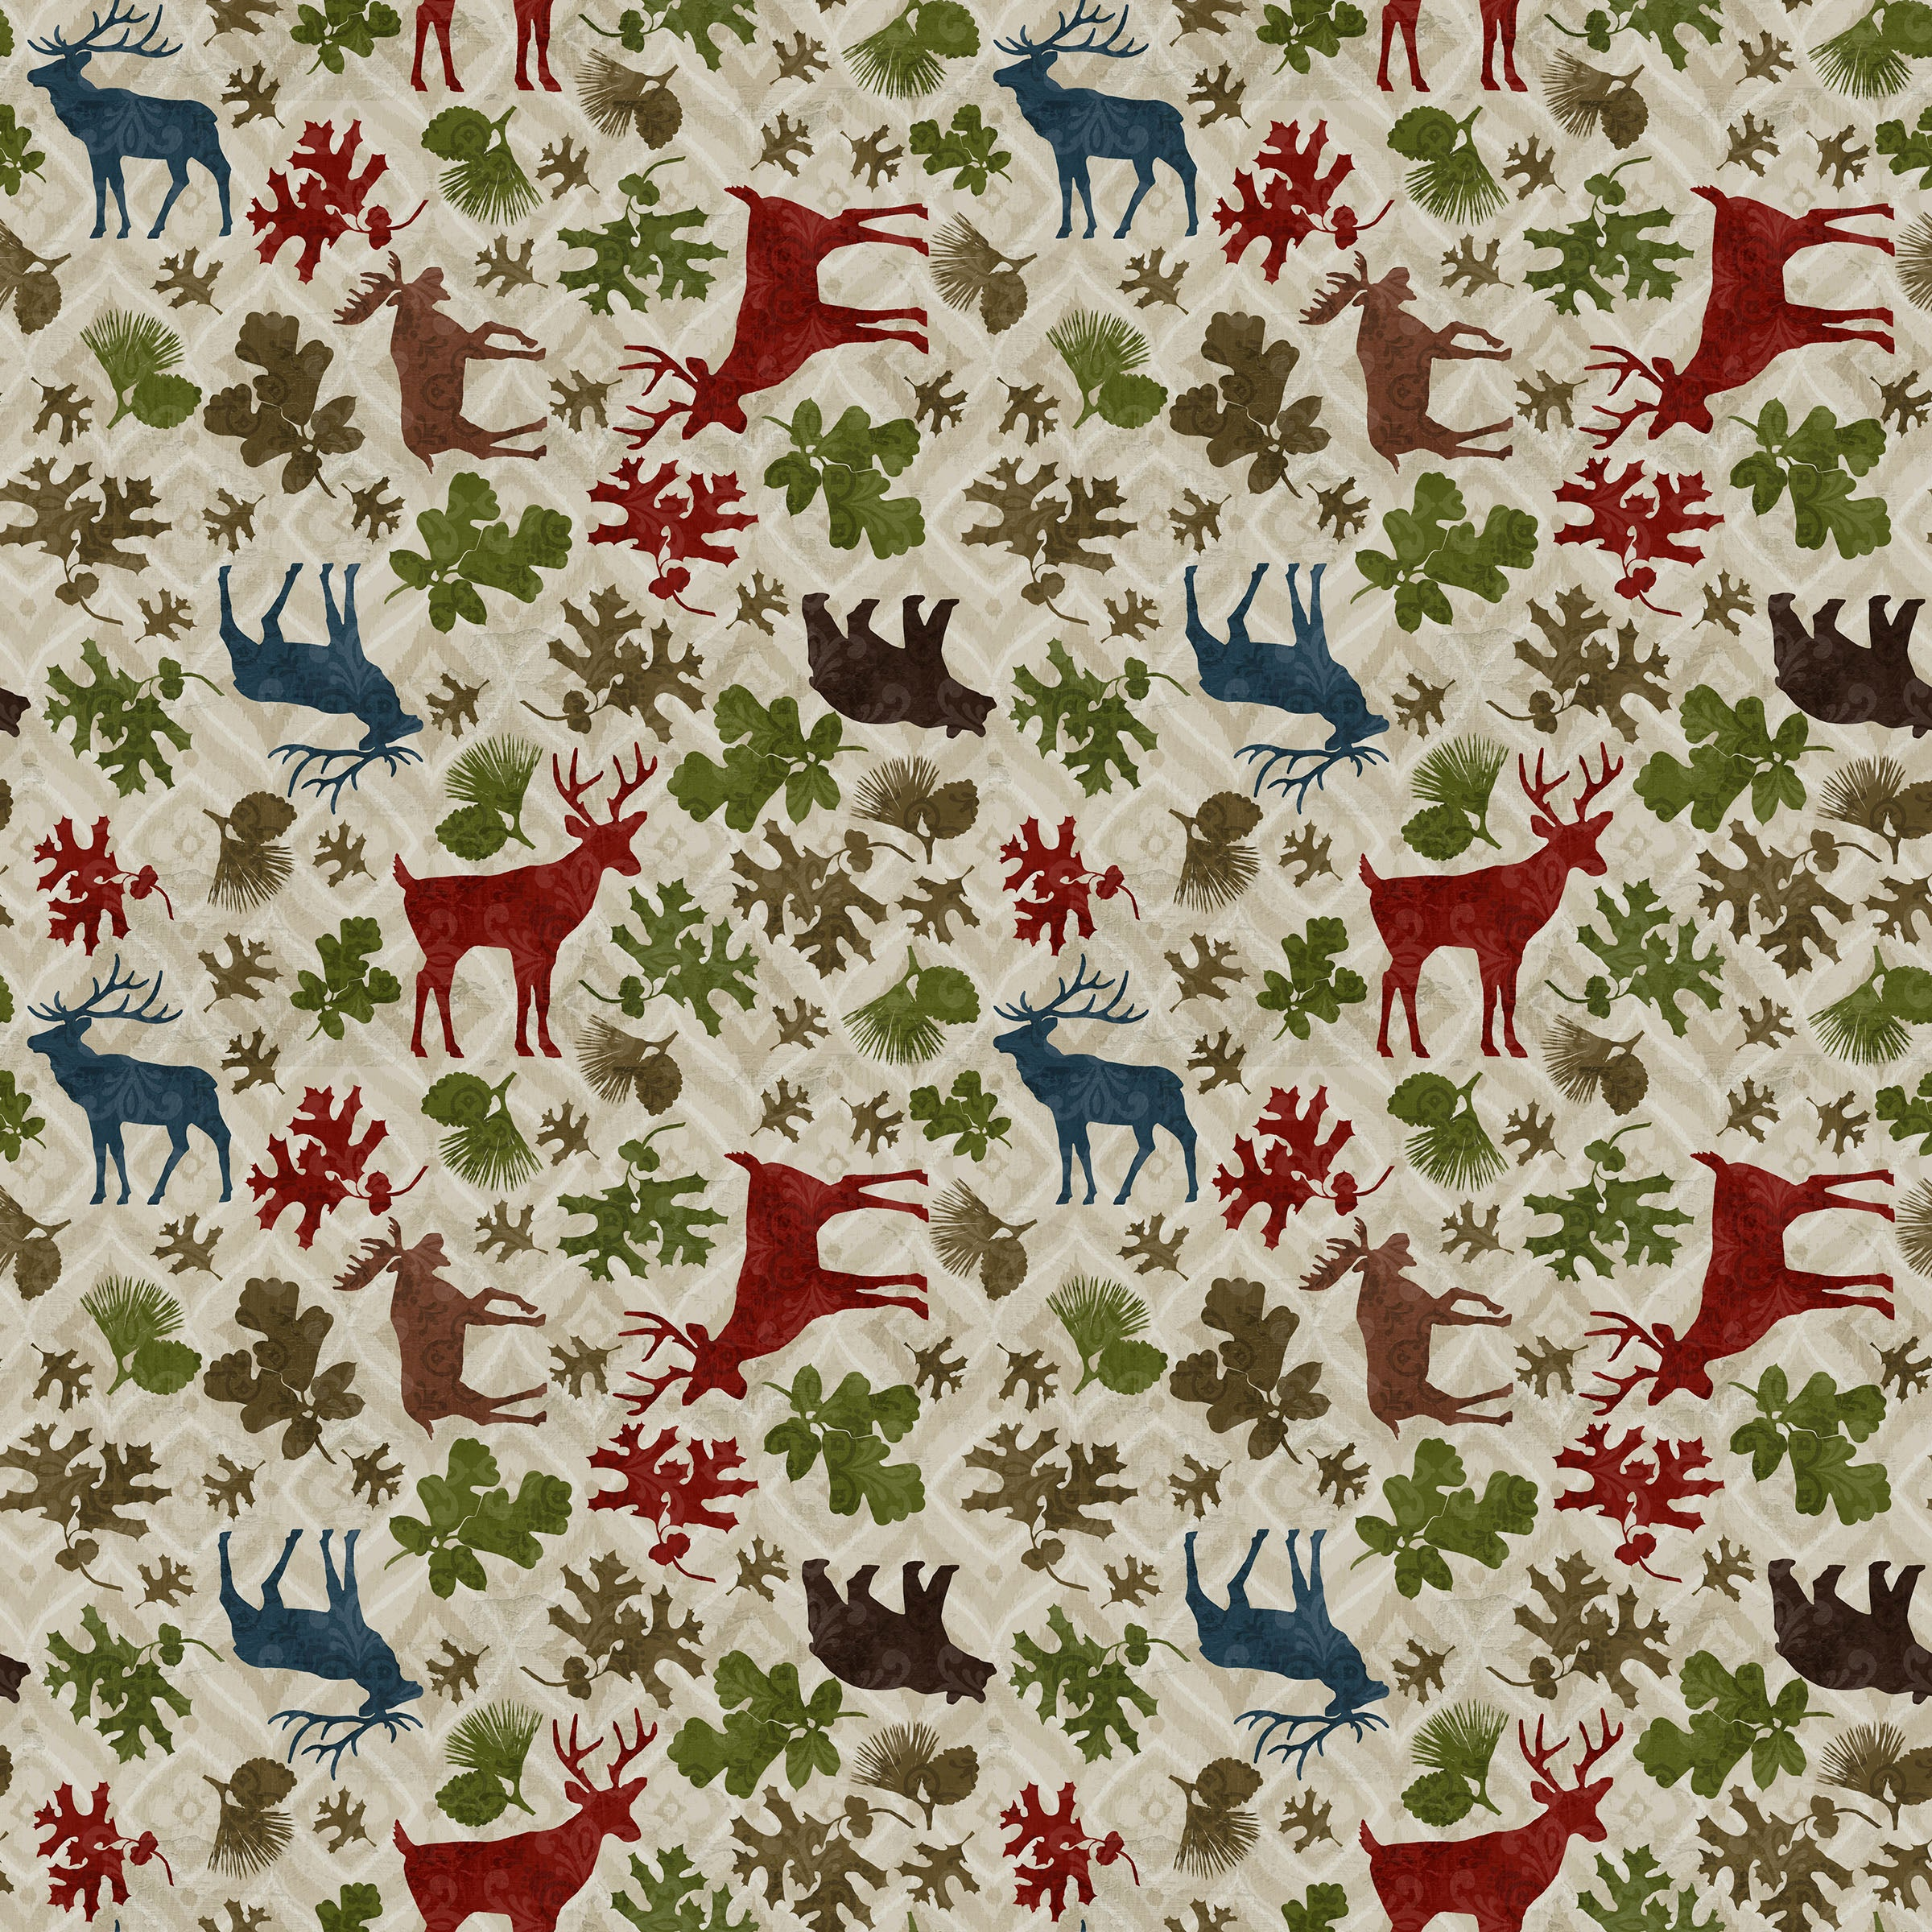 "Stitch & Sparkle Paul Brent-Lodge Farm-In The Forest 100% Cotton Fabric 44"" Wide, Quilt Crafts Cut by The Yard"